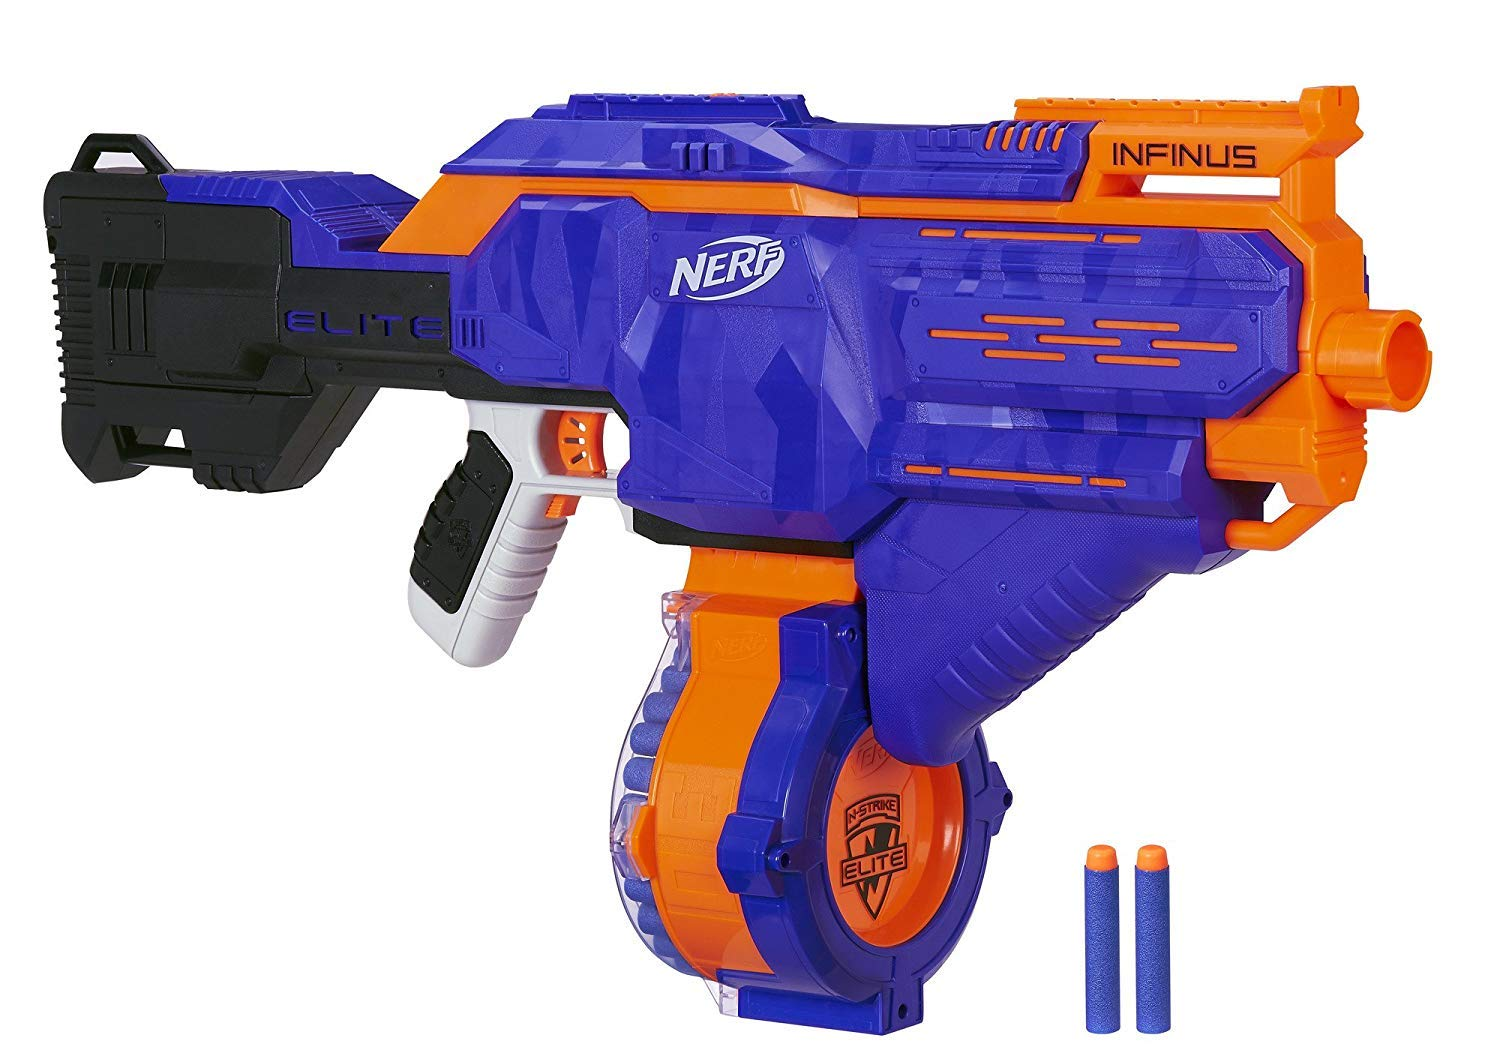 NERF Infinus N-Strike Elite Toy Motorized Blaster with Speed-Load Technology (FFP) by NERF (Image #2)